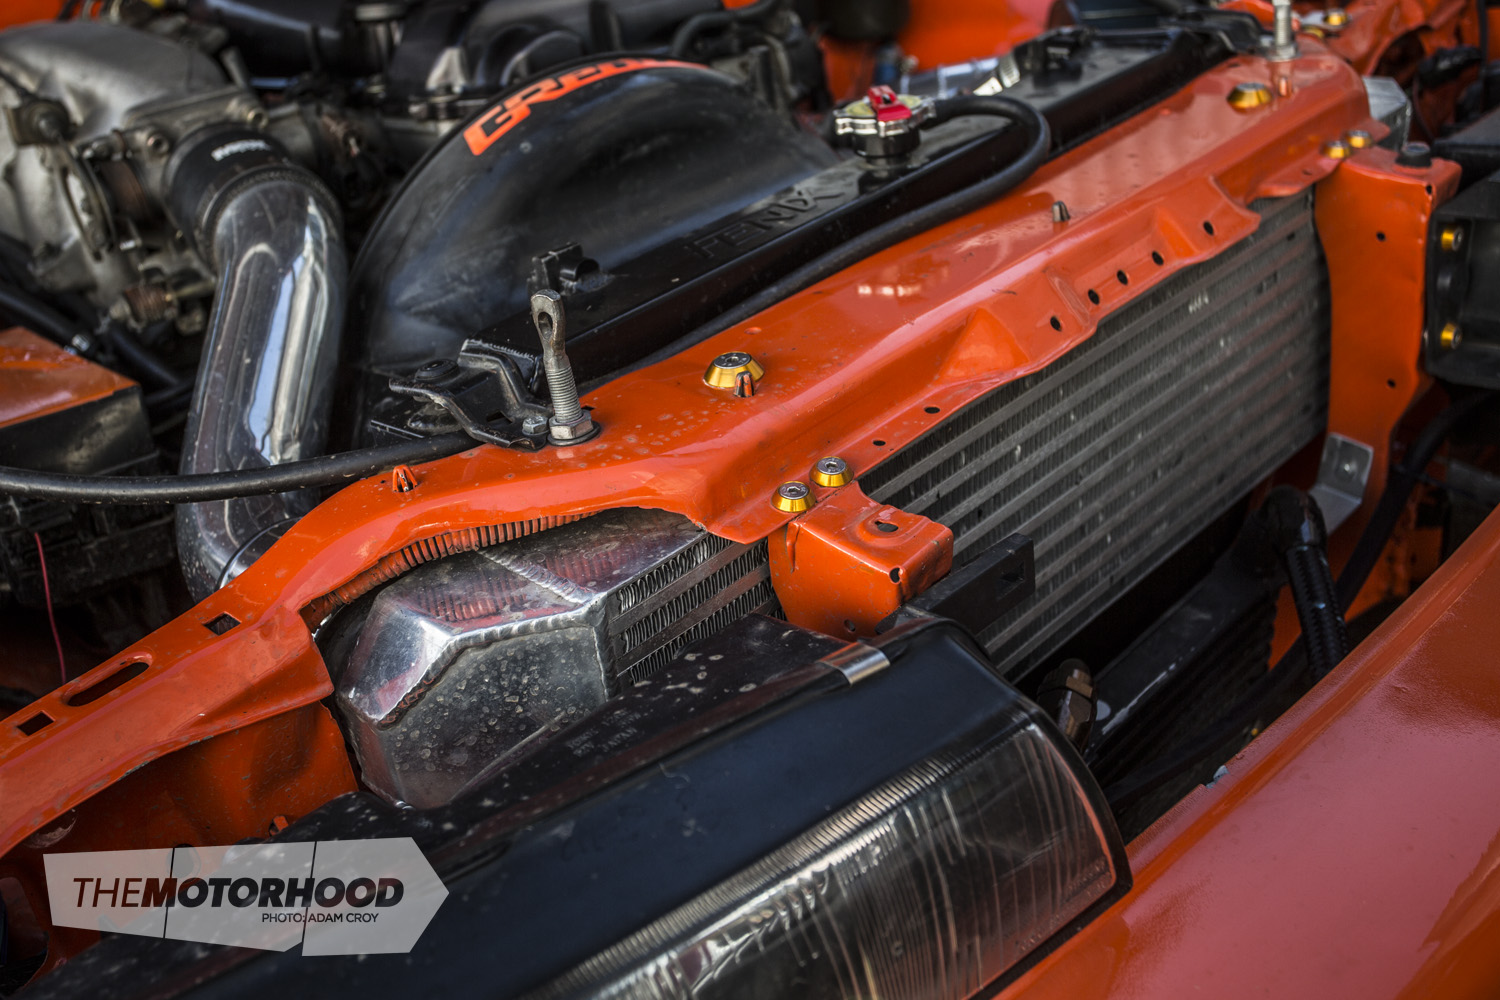 Weekly Motor Fix: a sideways look at an SR20-powered S13 — The Motorhood